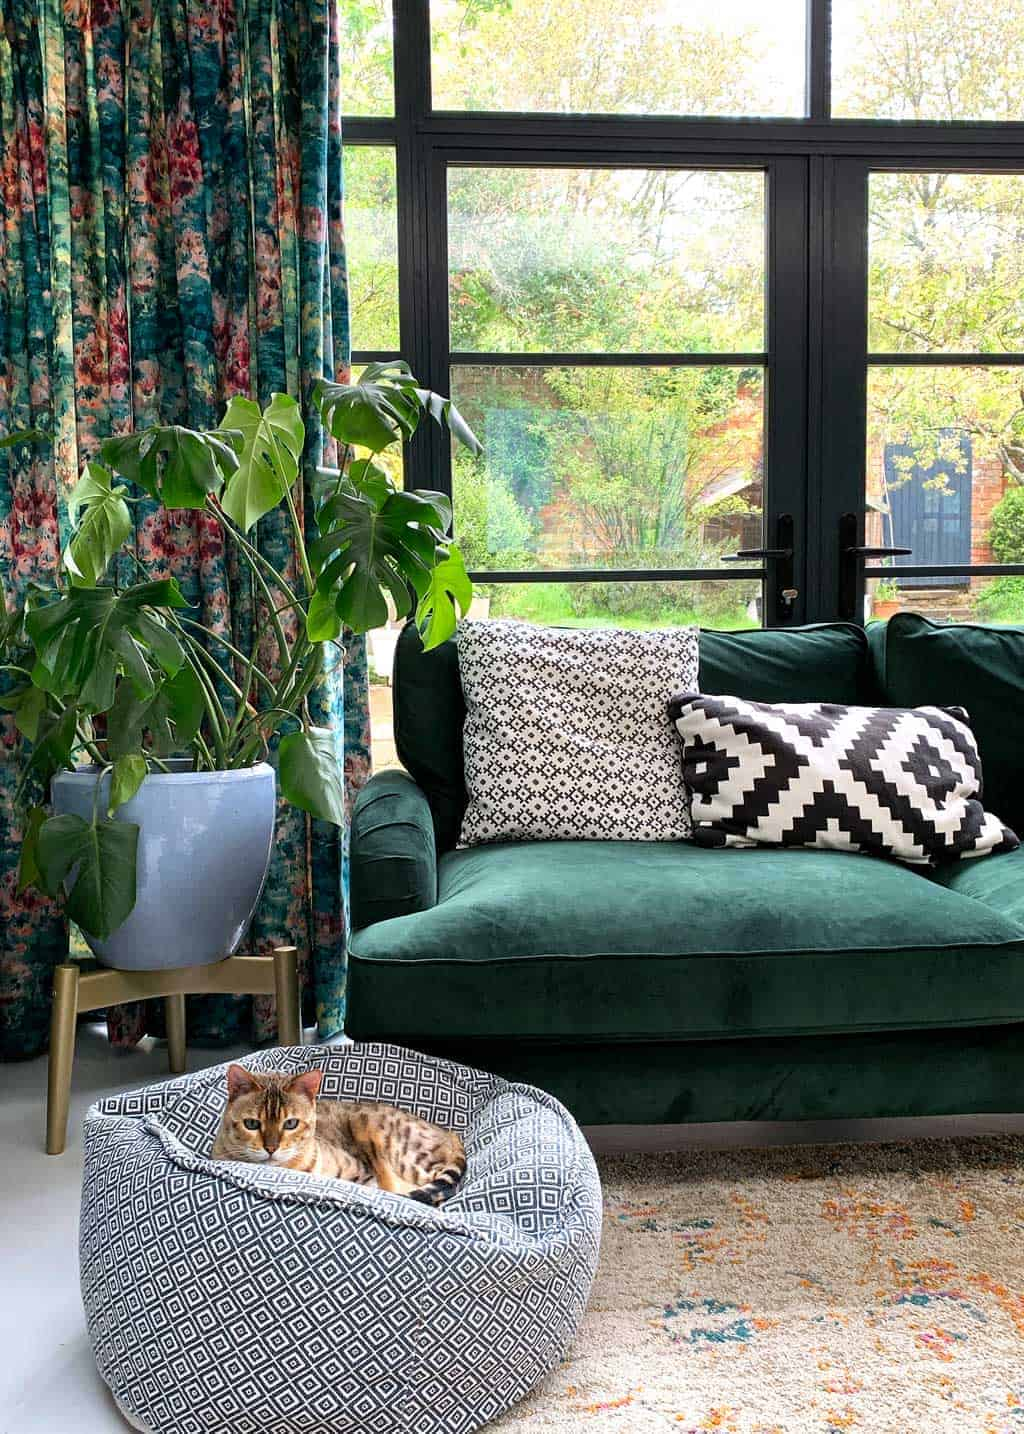 Made to measure Curtains from Couture Living